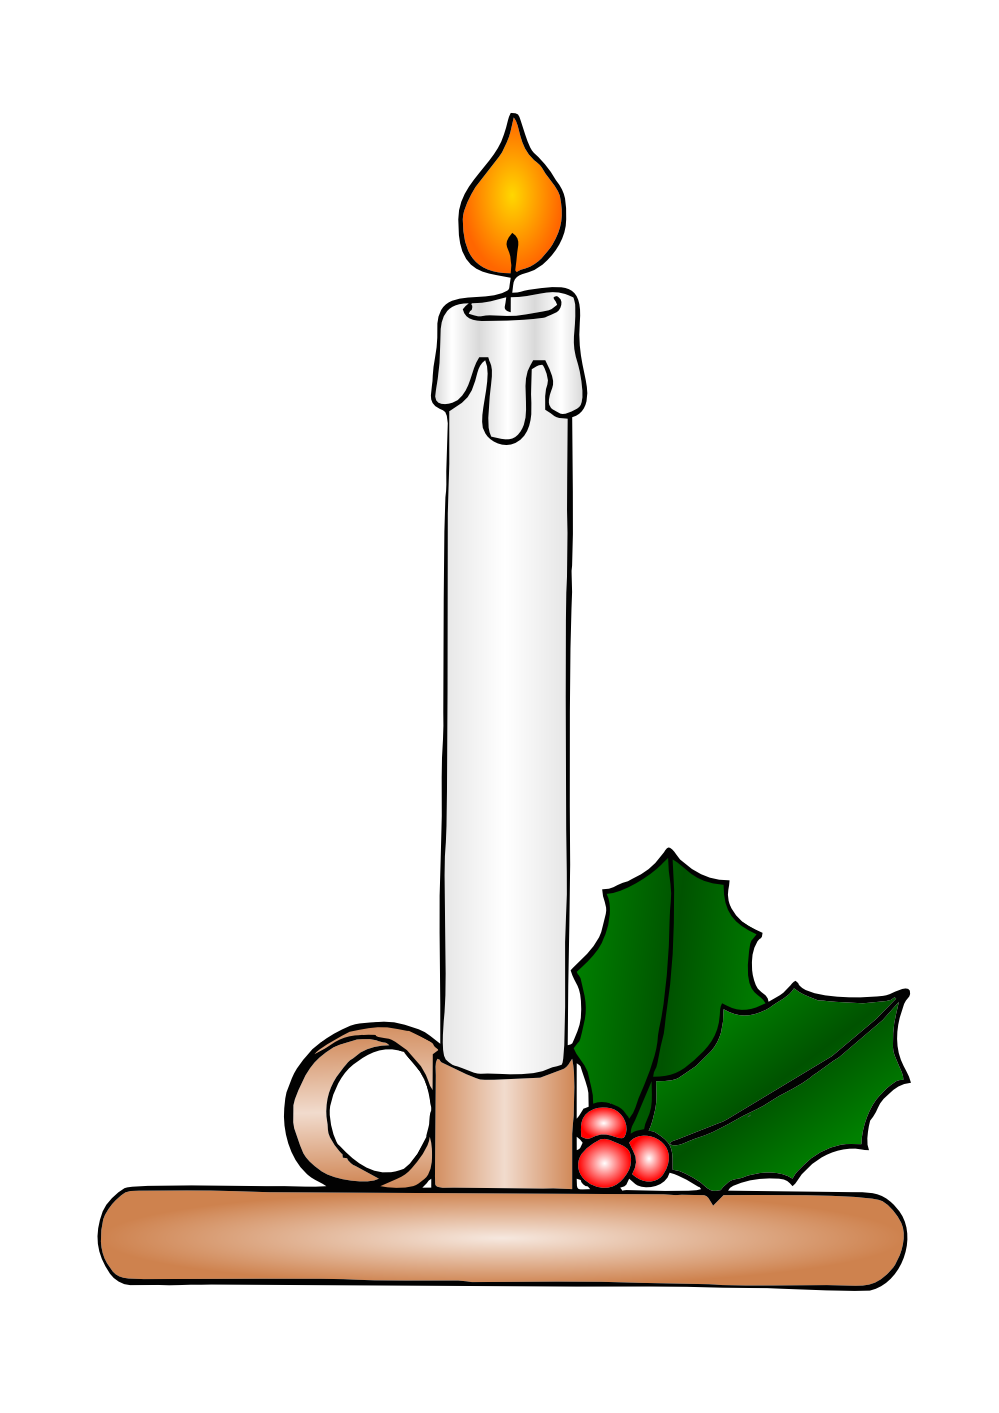 Pentecost clipart candle flame. Black color